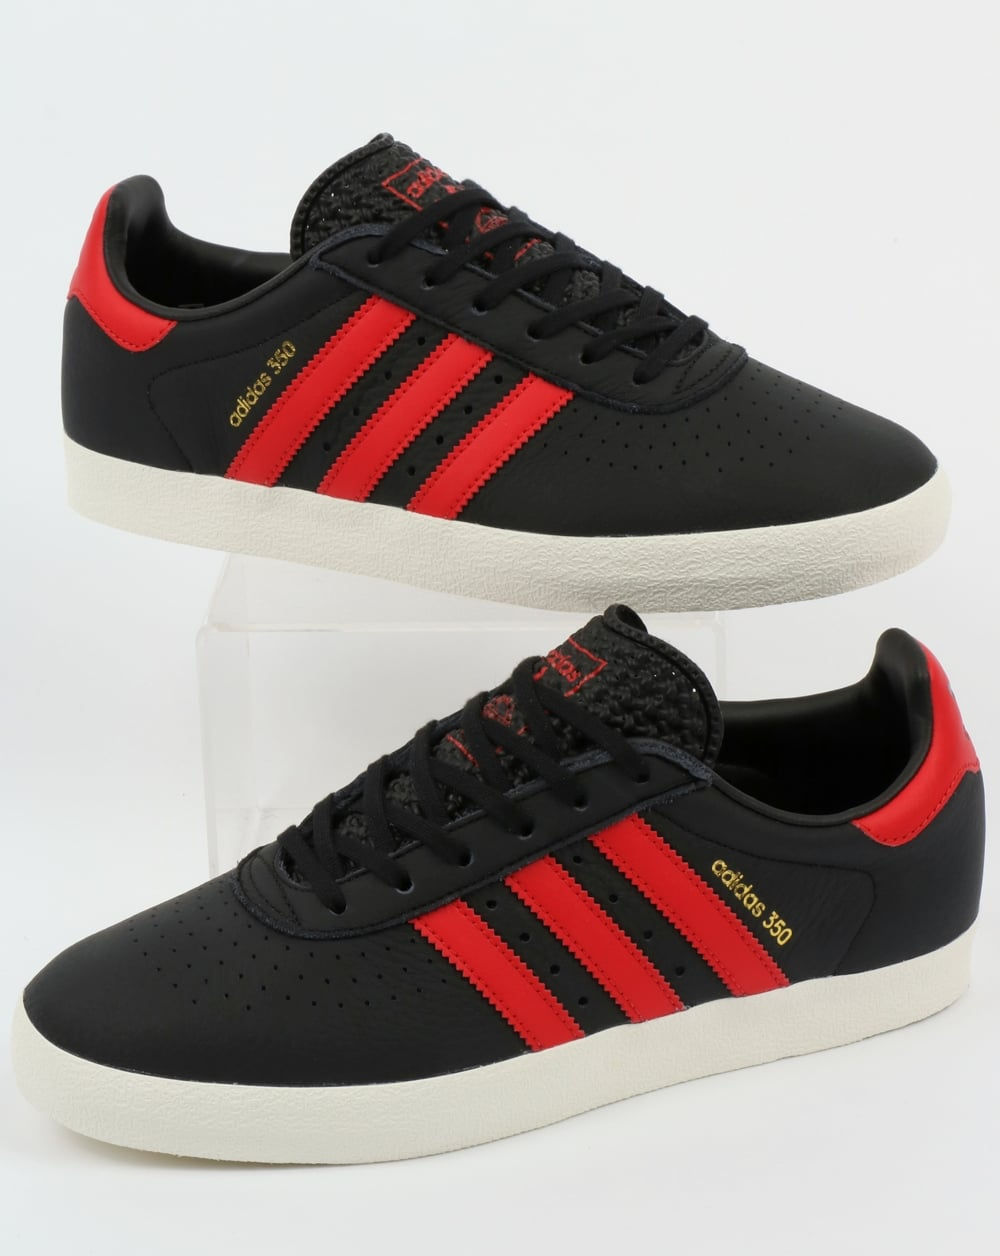 d1ea97ed0df adidas Trainers Adidas 350 Trainers Black Red